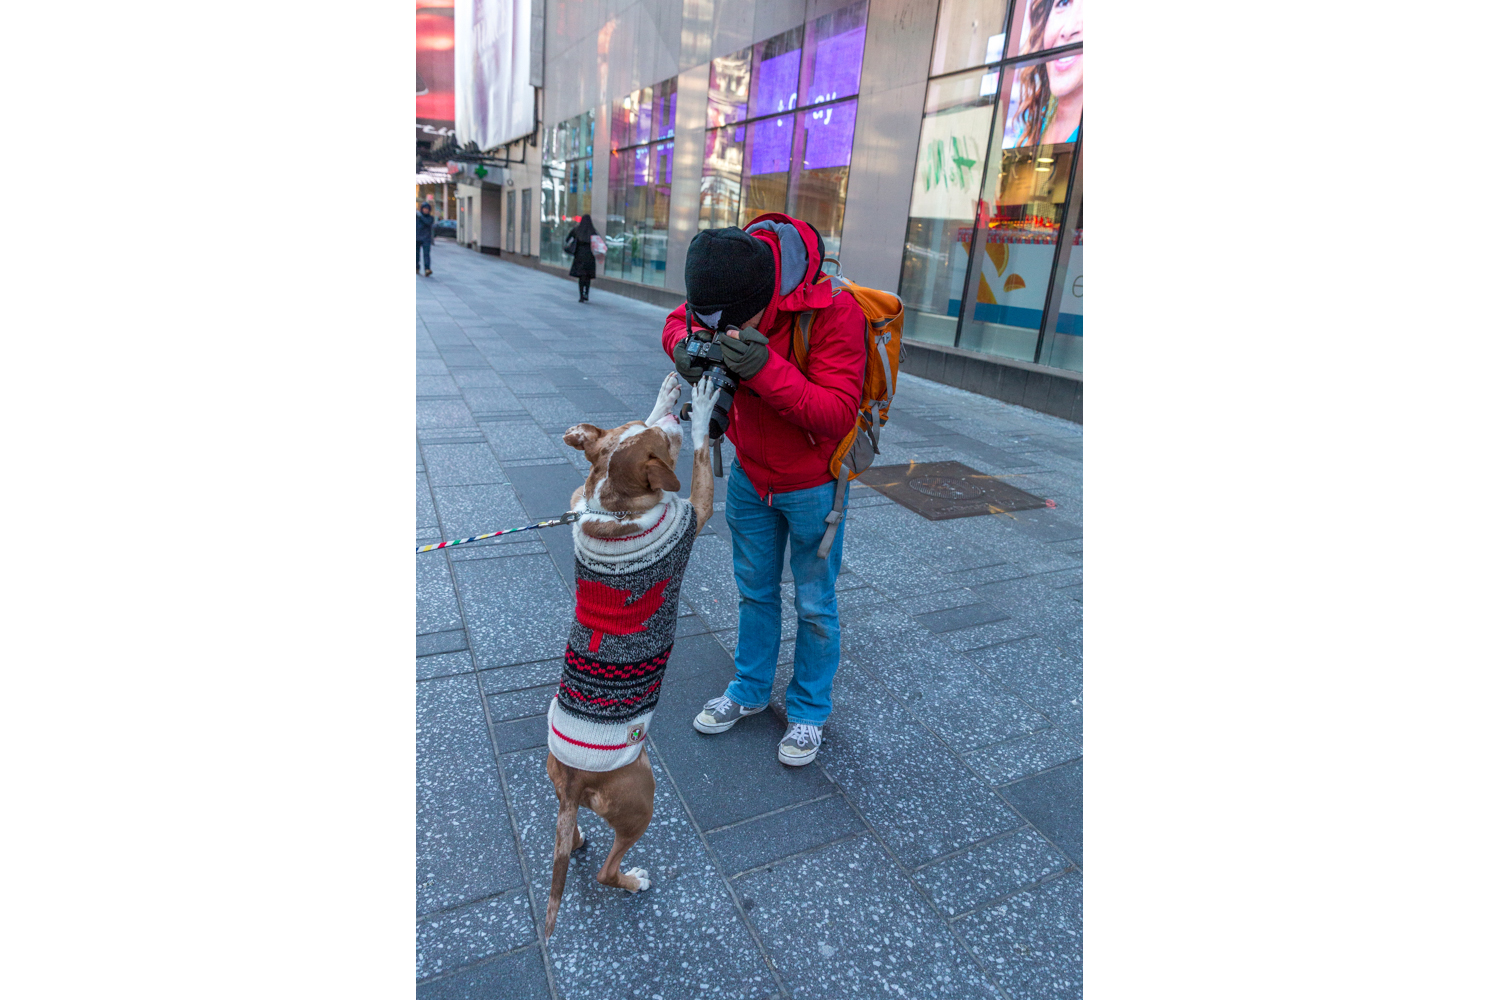 NYC Dogs - Behind the Scene3